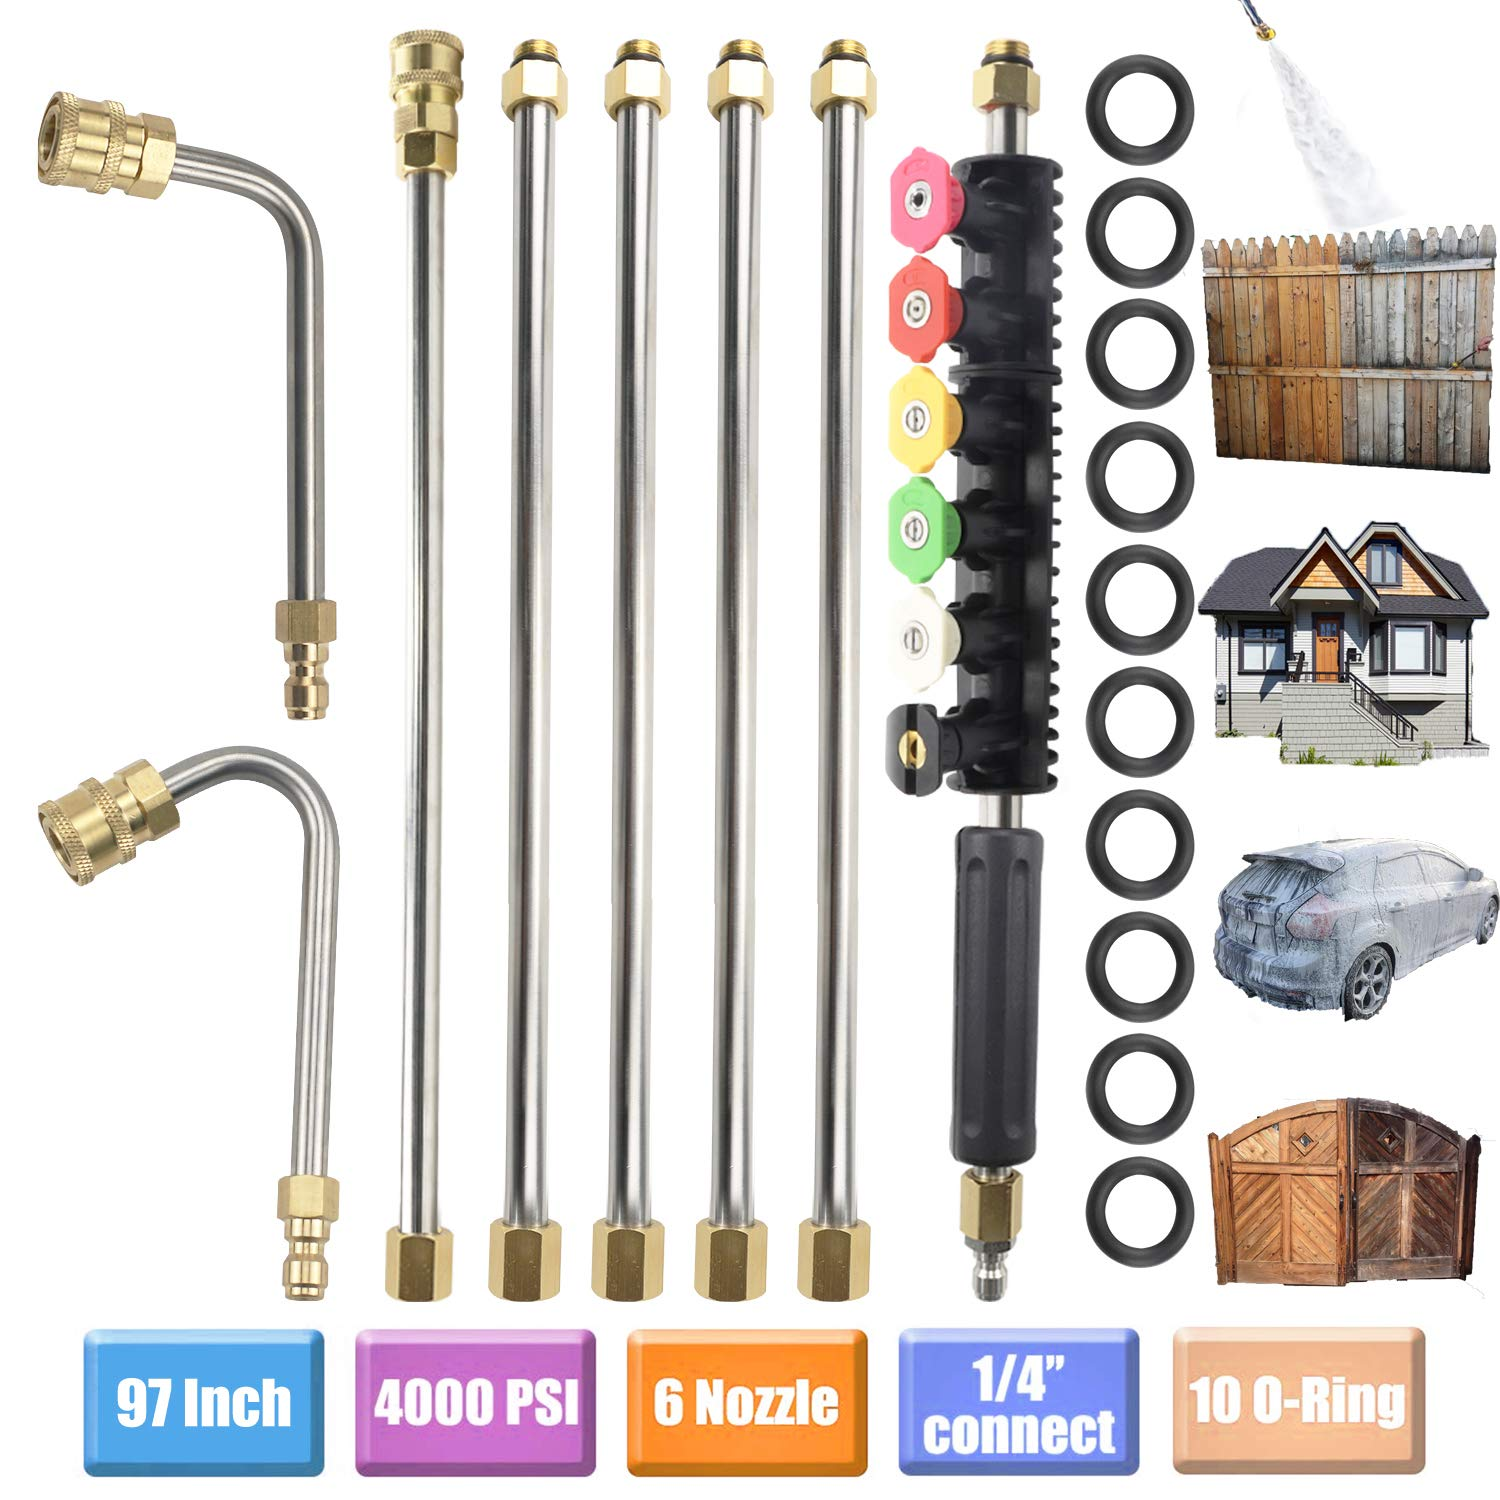 Upgraded Version Pressure Washer Extension Wand Set, Replacable Power Washer Lance with 6 Spray Nozzle Tips Design,90 Degrees +U Curved Rod, 1/4''Quick Connect, 10 Replacable Anti-Leaked Ring 4000 PSI by QIQU